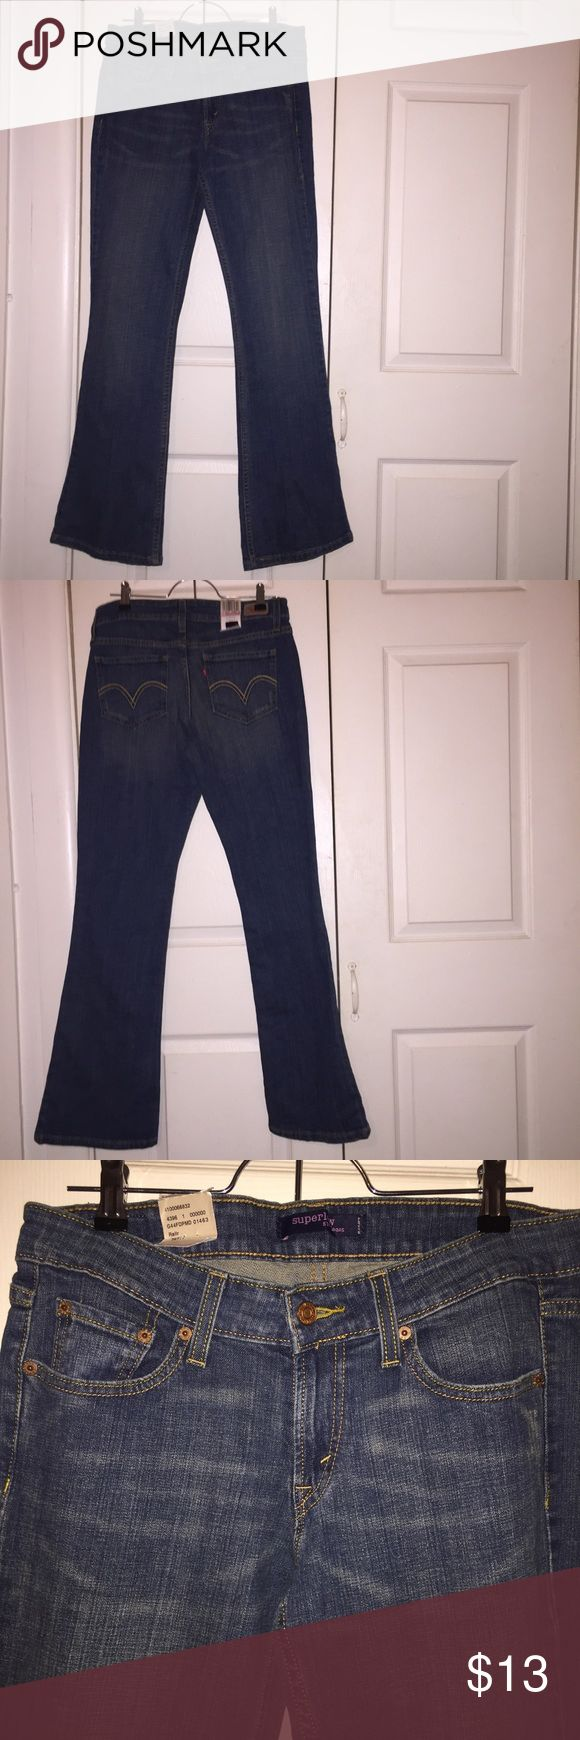 NWT LEVIS JEANS Price firm on NWT iteams no offers. boot cut levis brand new never worn. size says 7 medium juniors. will take measurements upon request. Tag says $40.00 i scribled out the tag because i had previously written my initials on the tag. Levi's Jeans Boot Cut